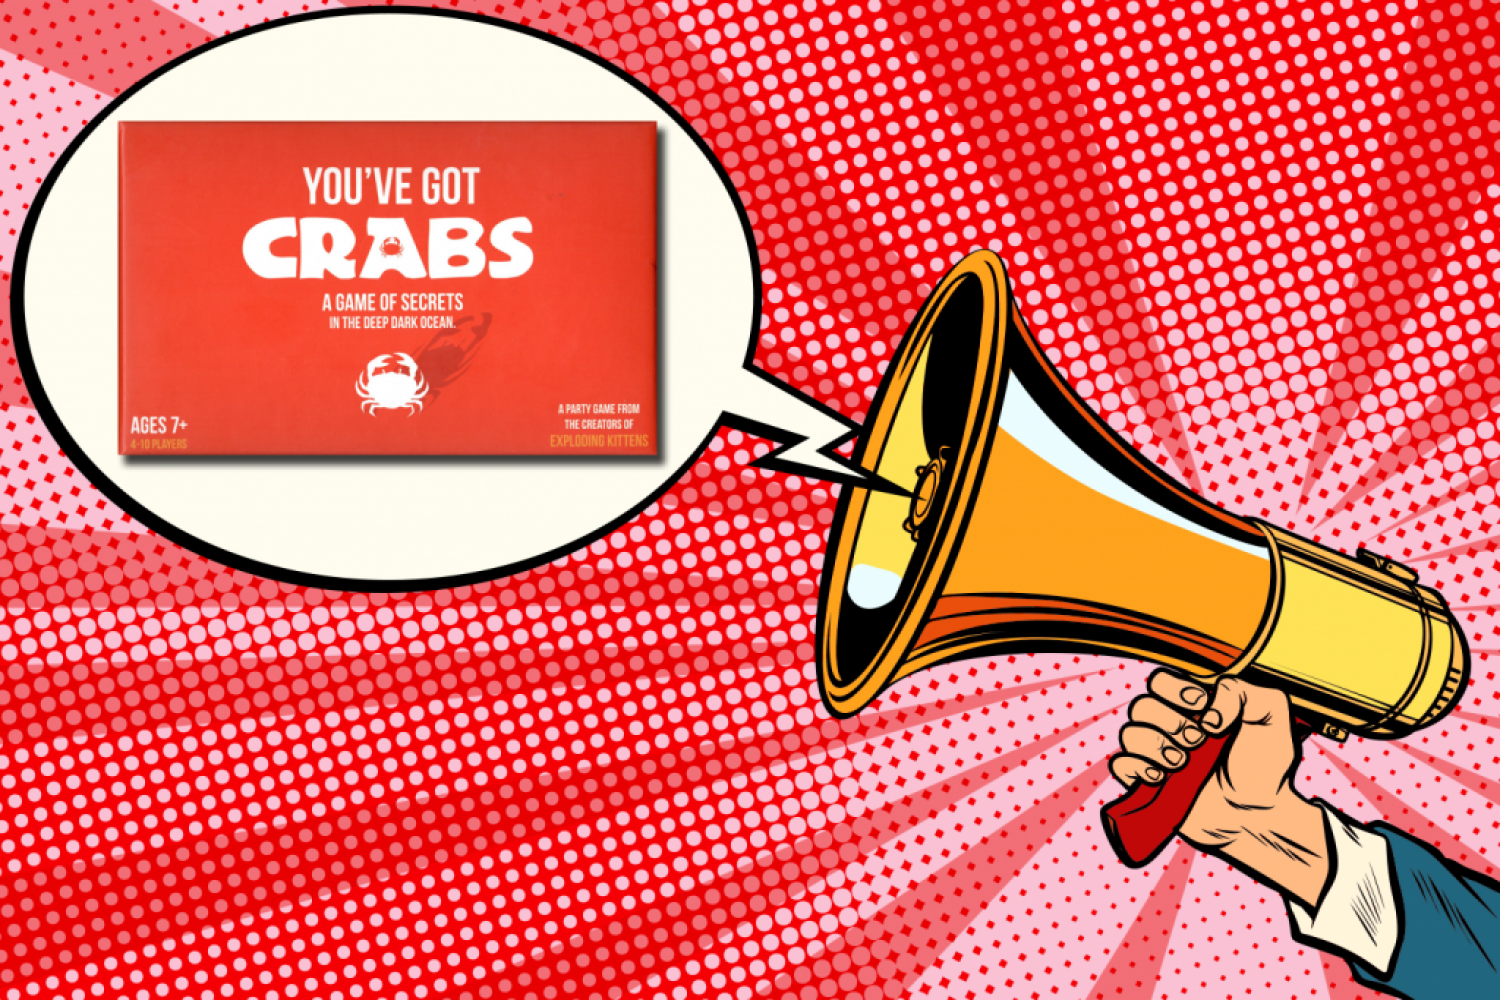 Youve-Got-Crabs-review